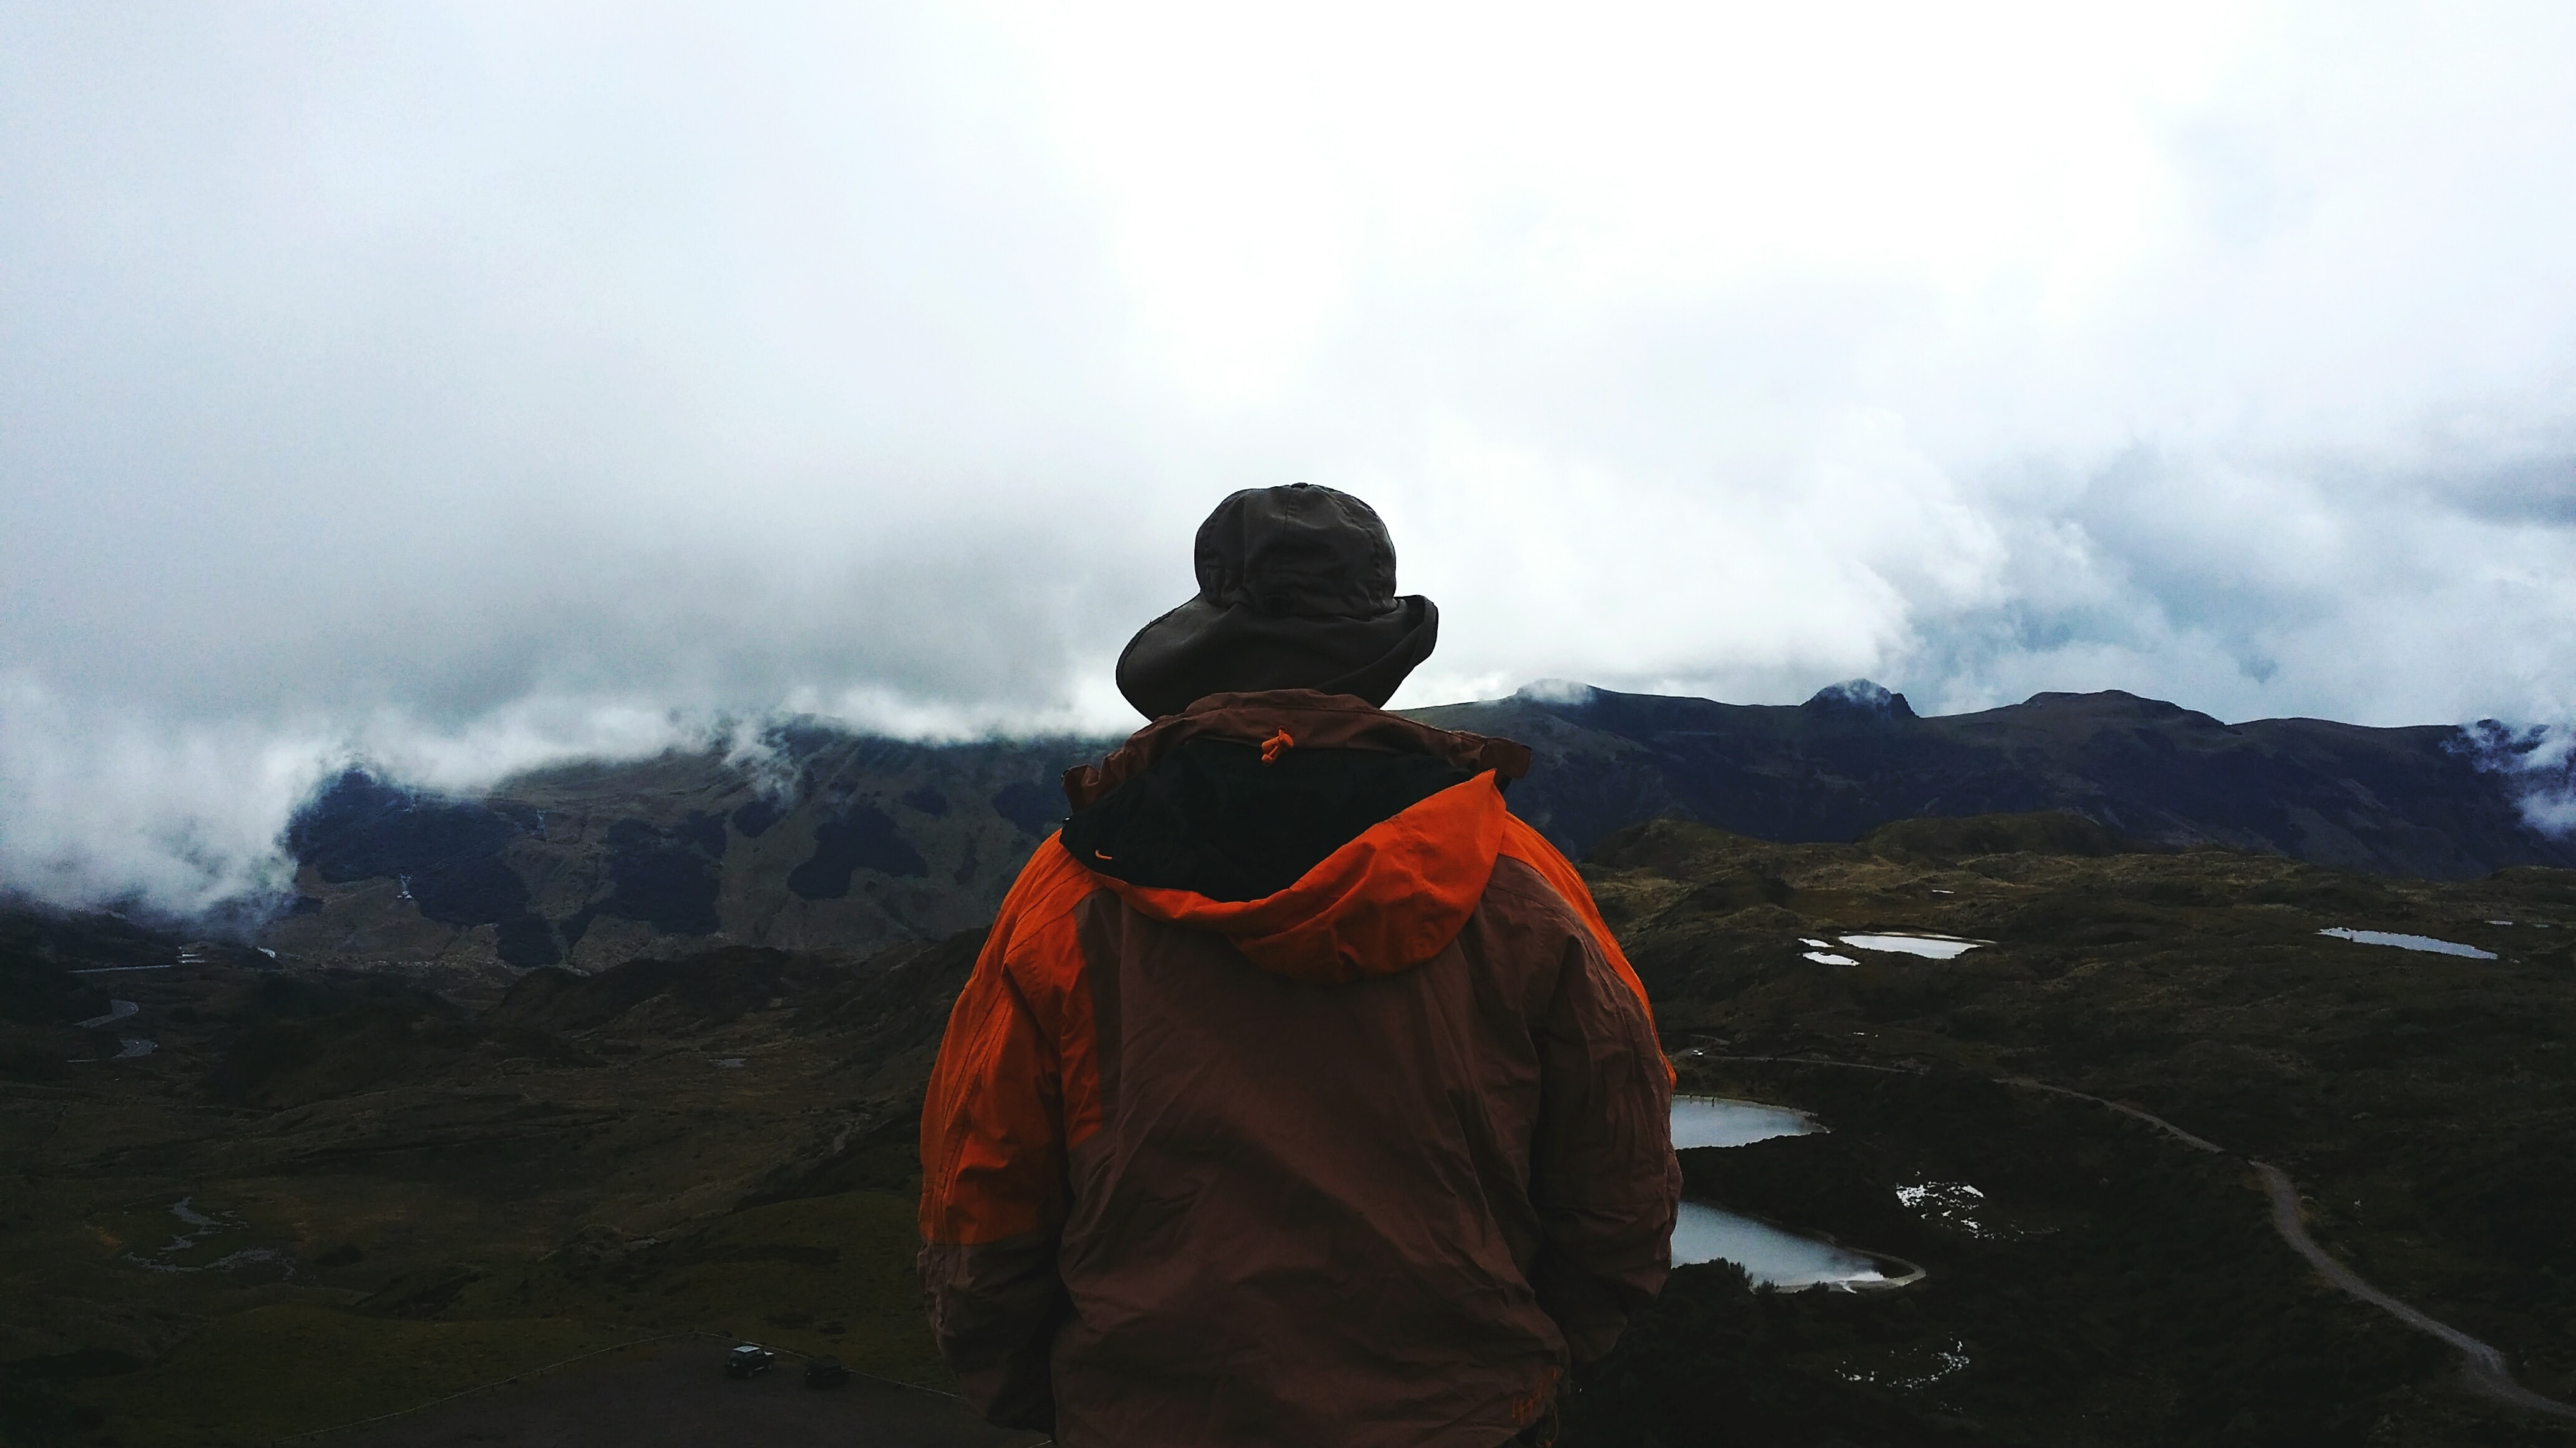 A person walking in a cloudy valley in Quito wearing a bright orange coat